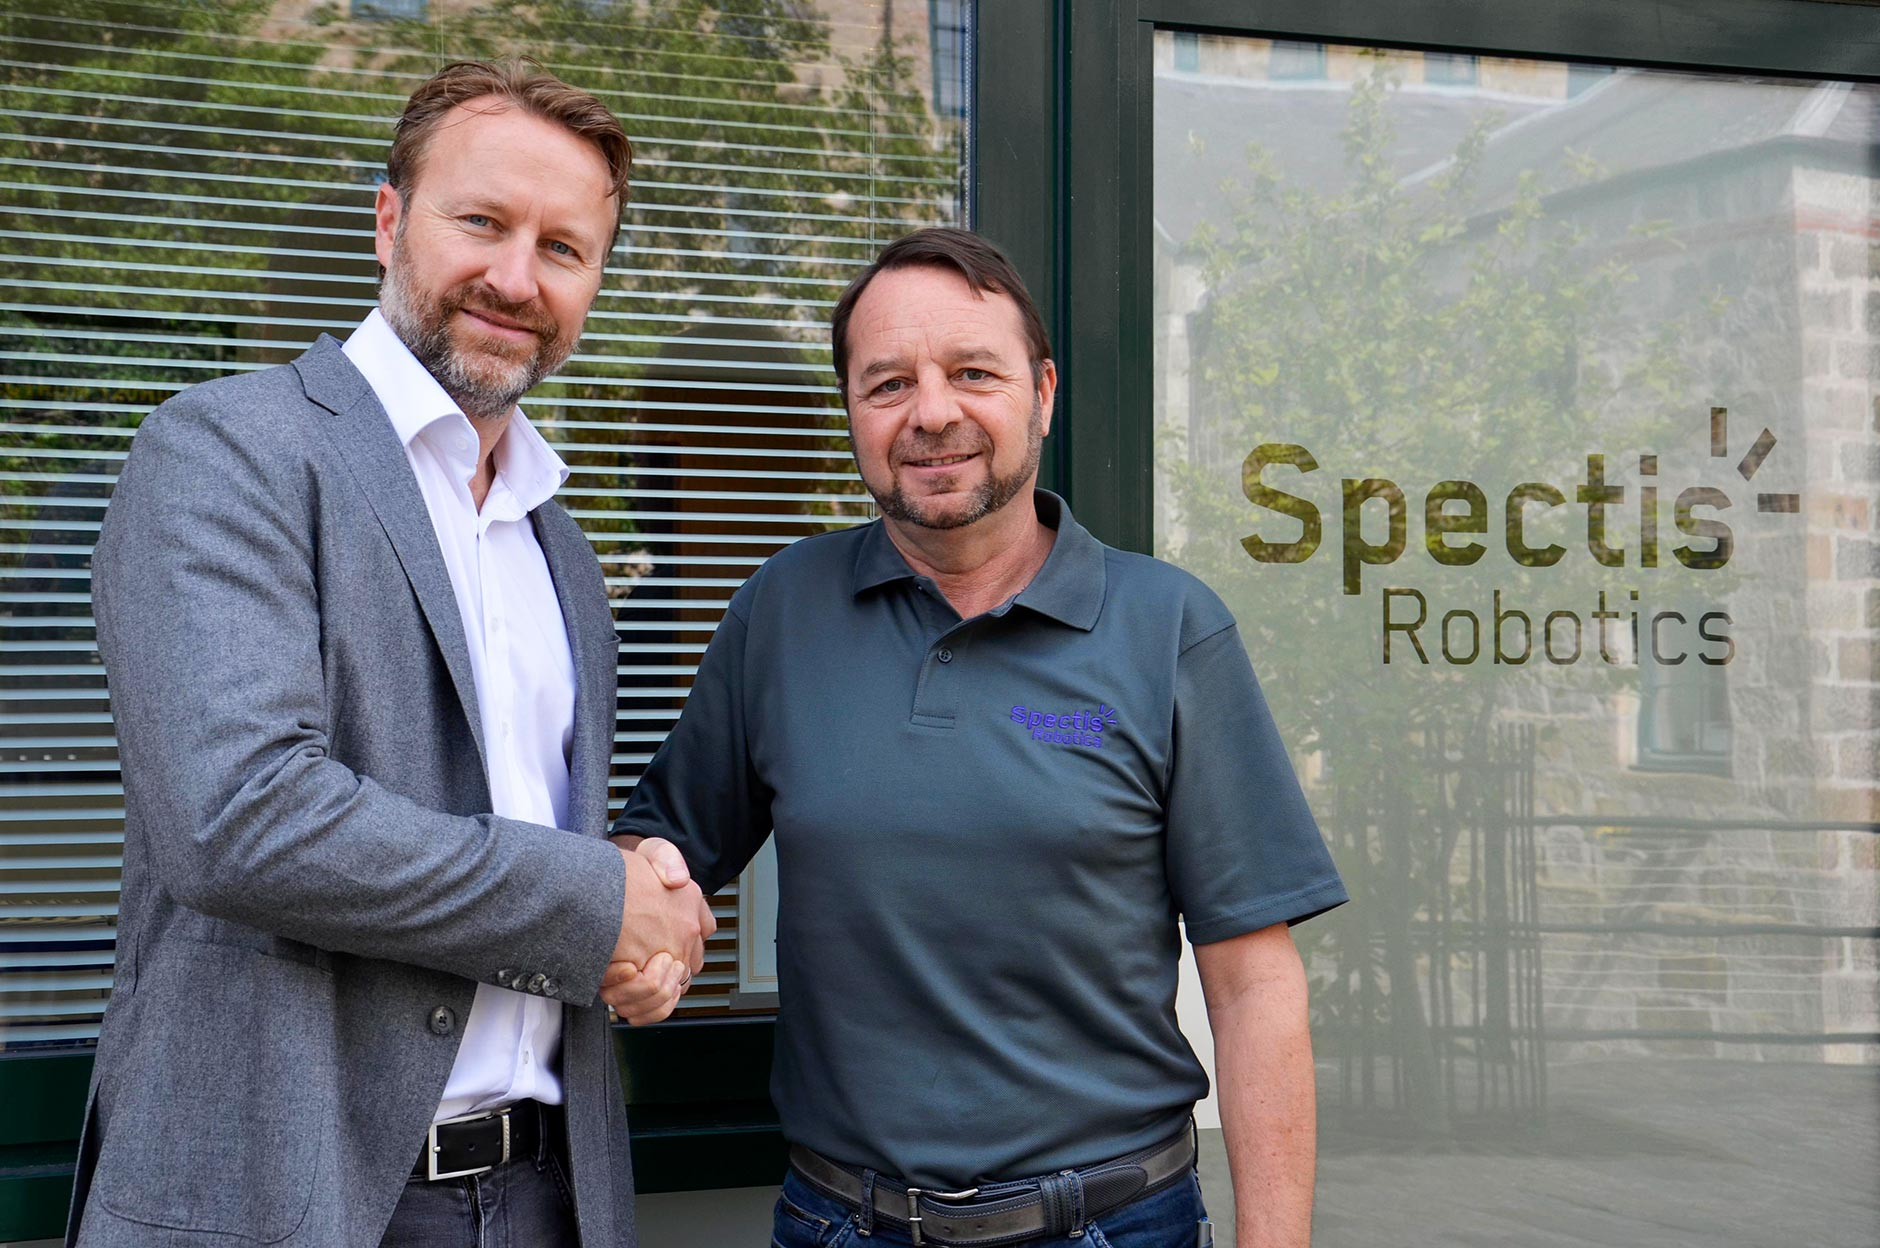 Spectis Robotics agrees international partnerships to add value to market